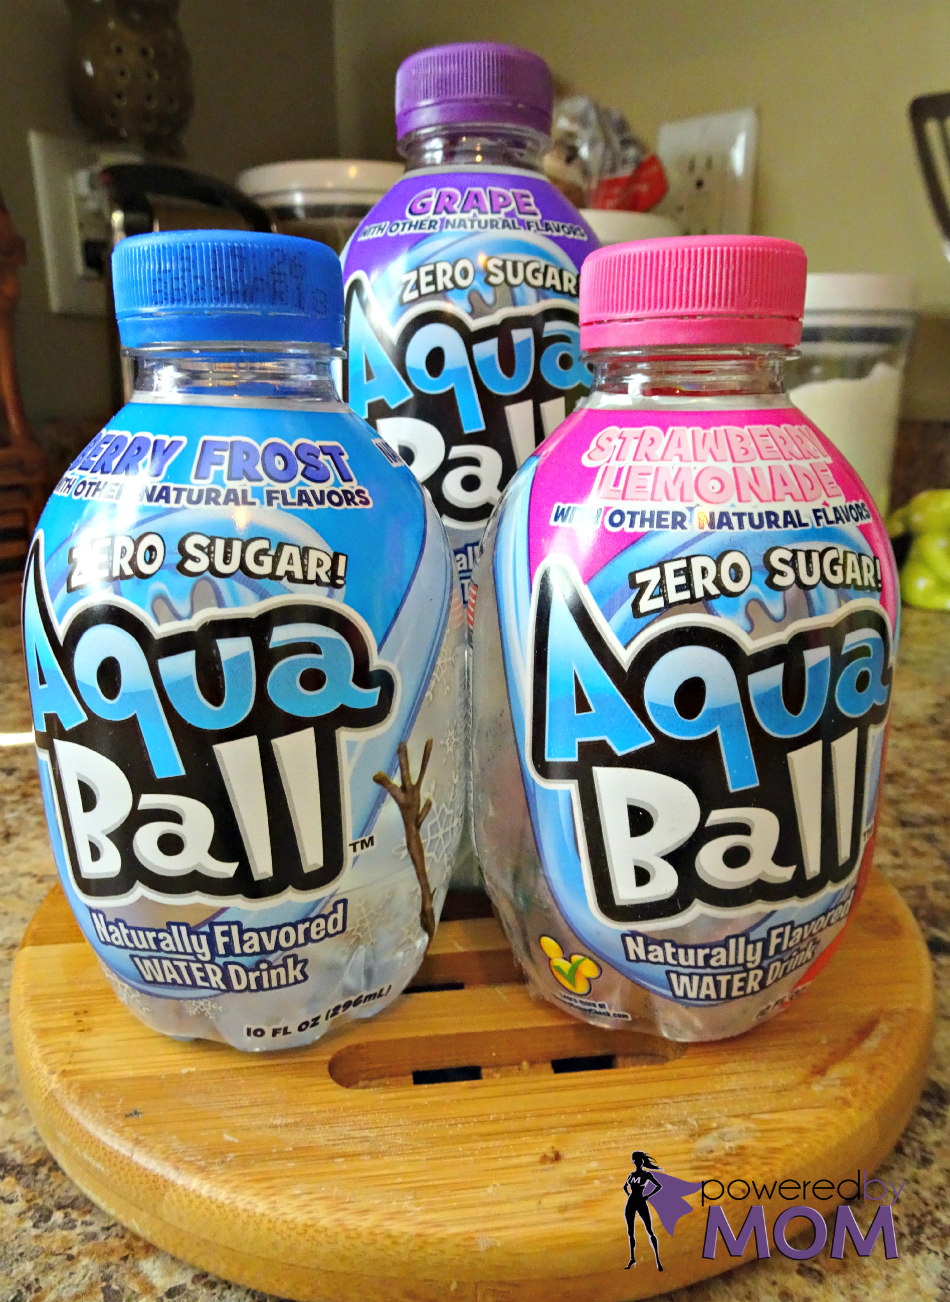 Aqua Ball Flavored Water